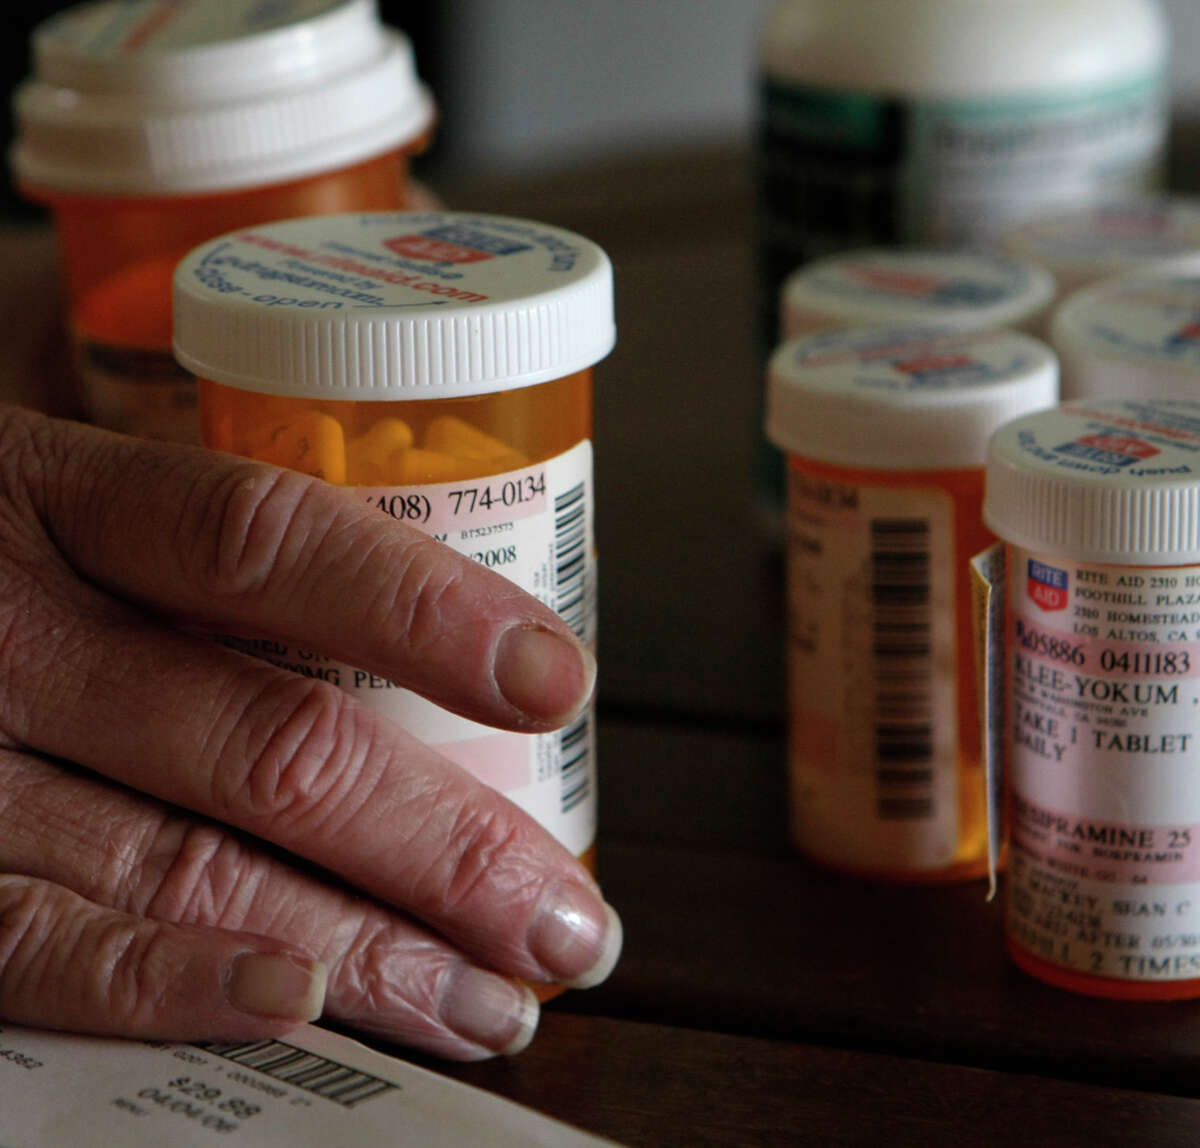 Americans take 80 percent of the painkillers used in the world, though only 28 per cent of respondents in a recent survey said drugs completely kill their pain.